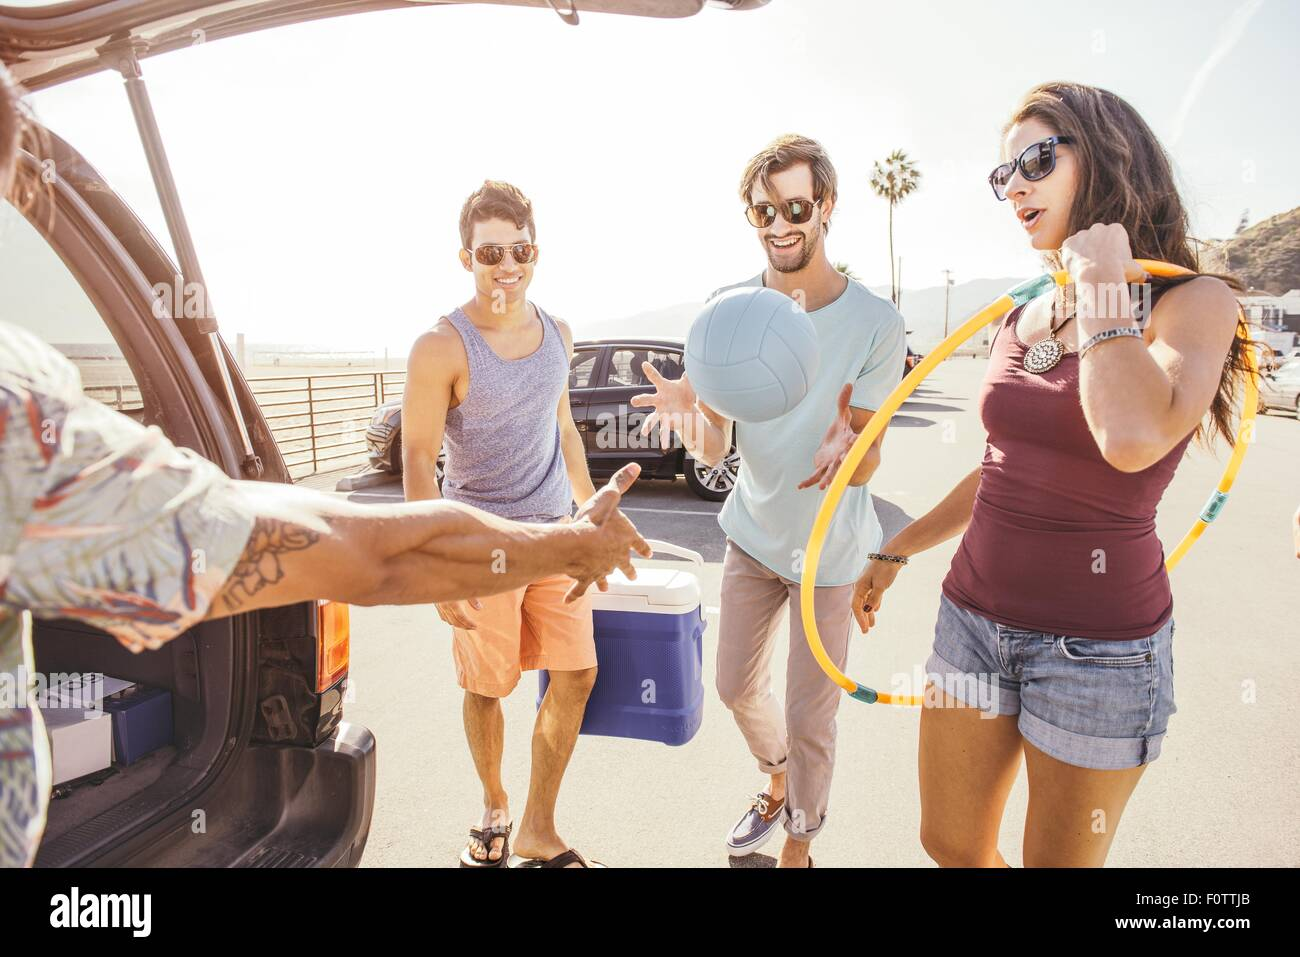 Group of friends standing by car, holding picnic and play items - Stock Image